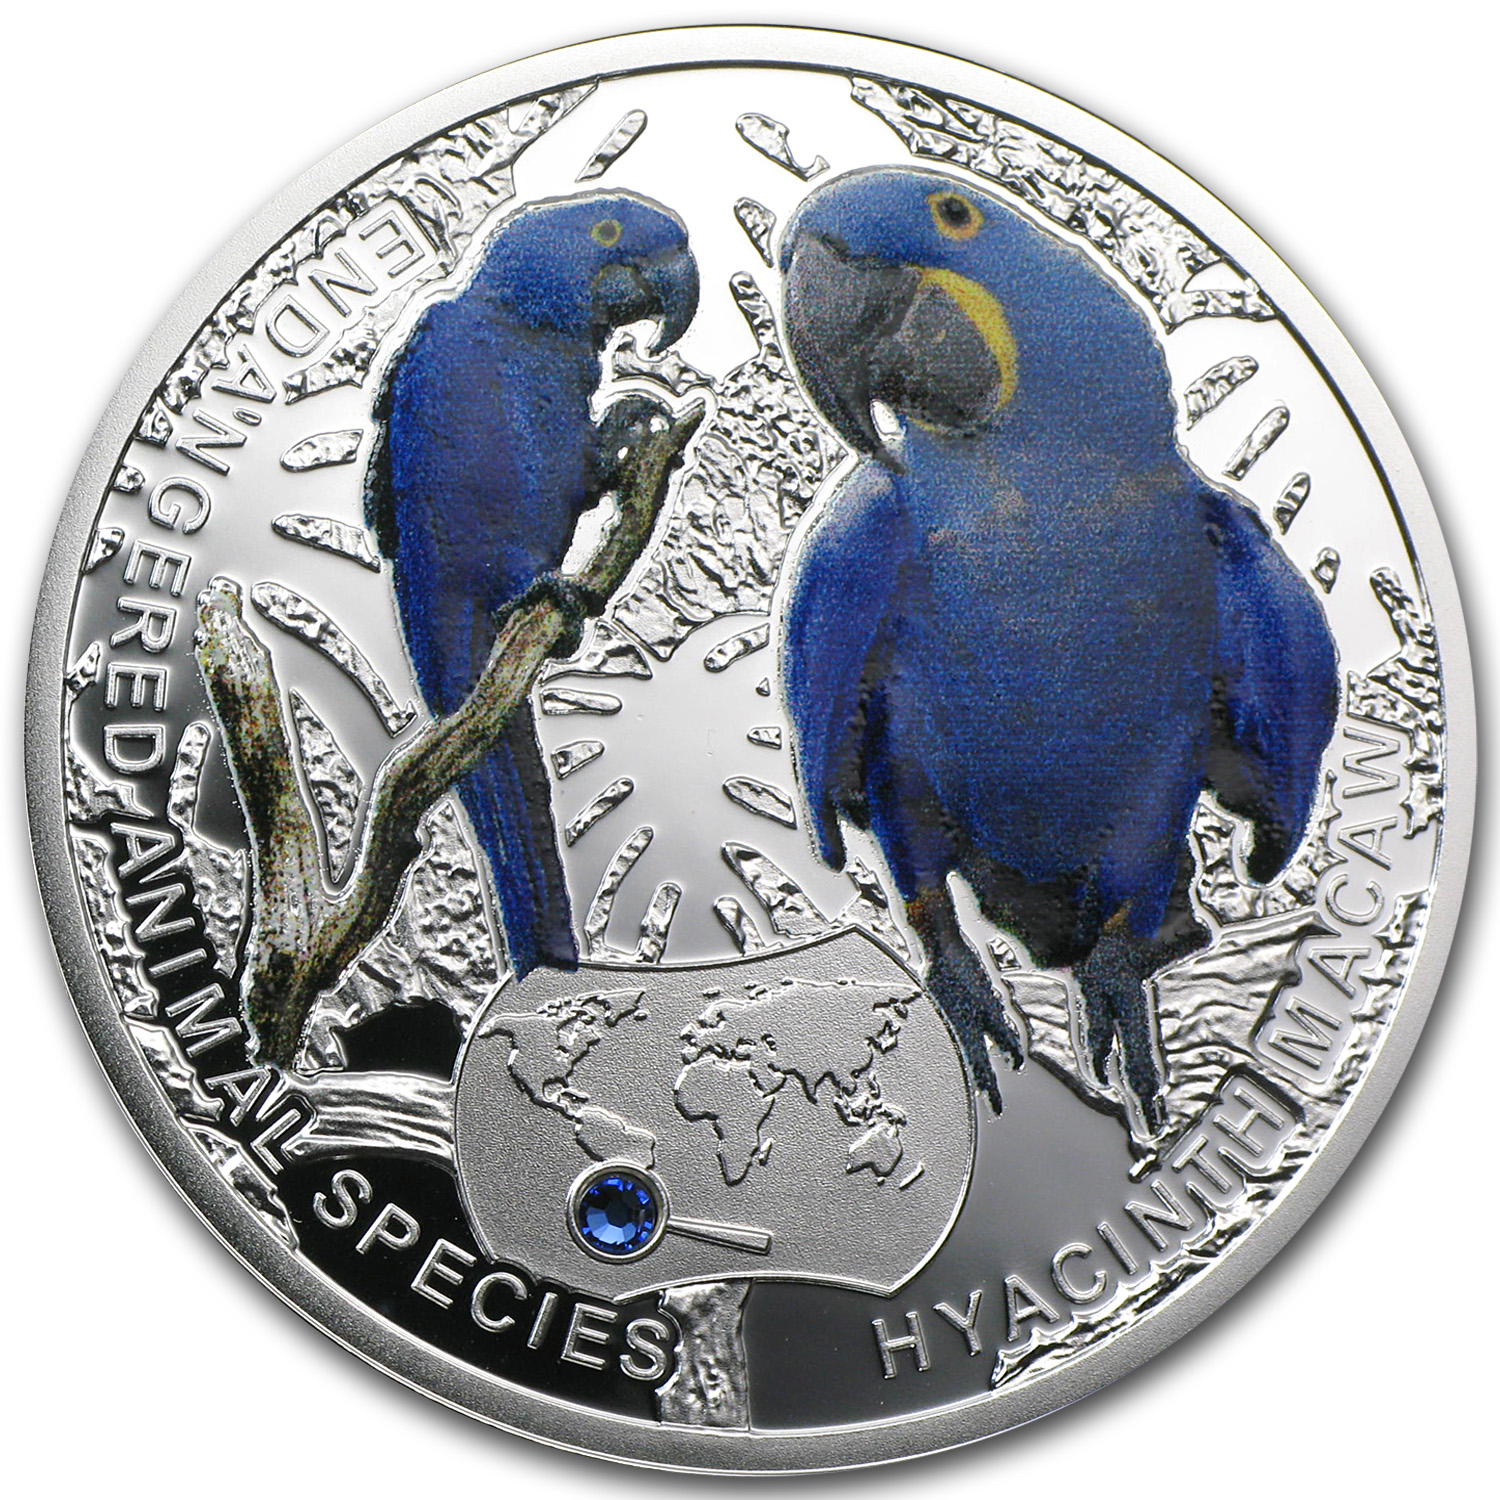 2014 Niue Proof Silver Endangered Animal Species Hyacinth